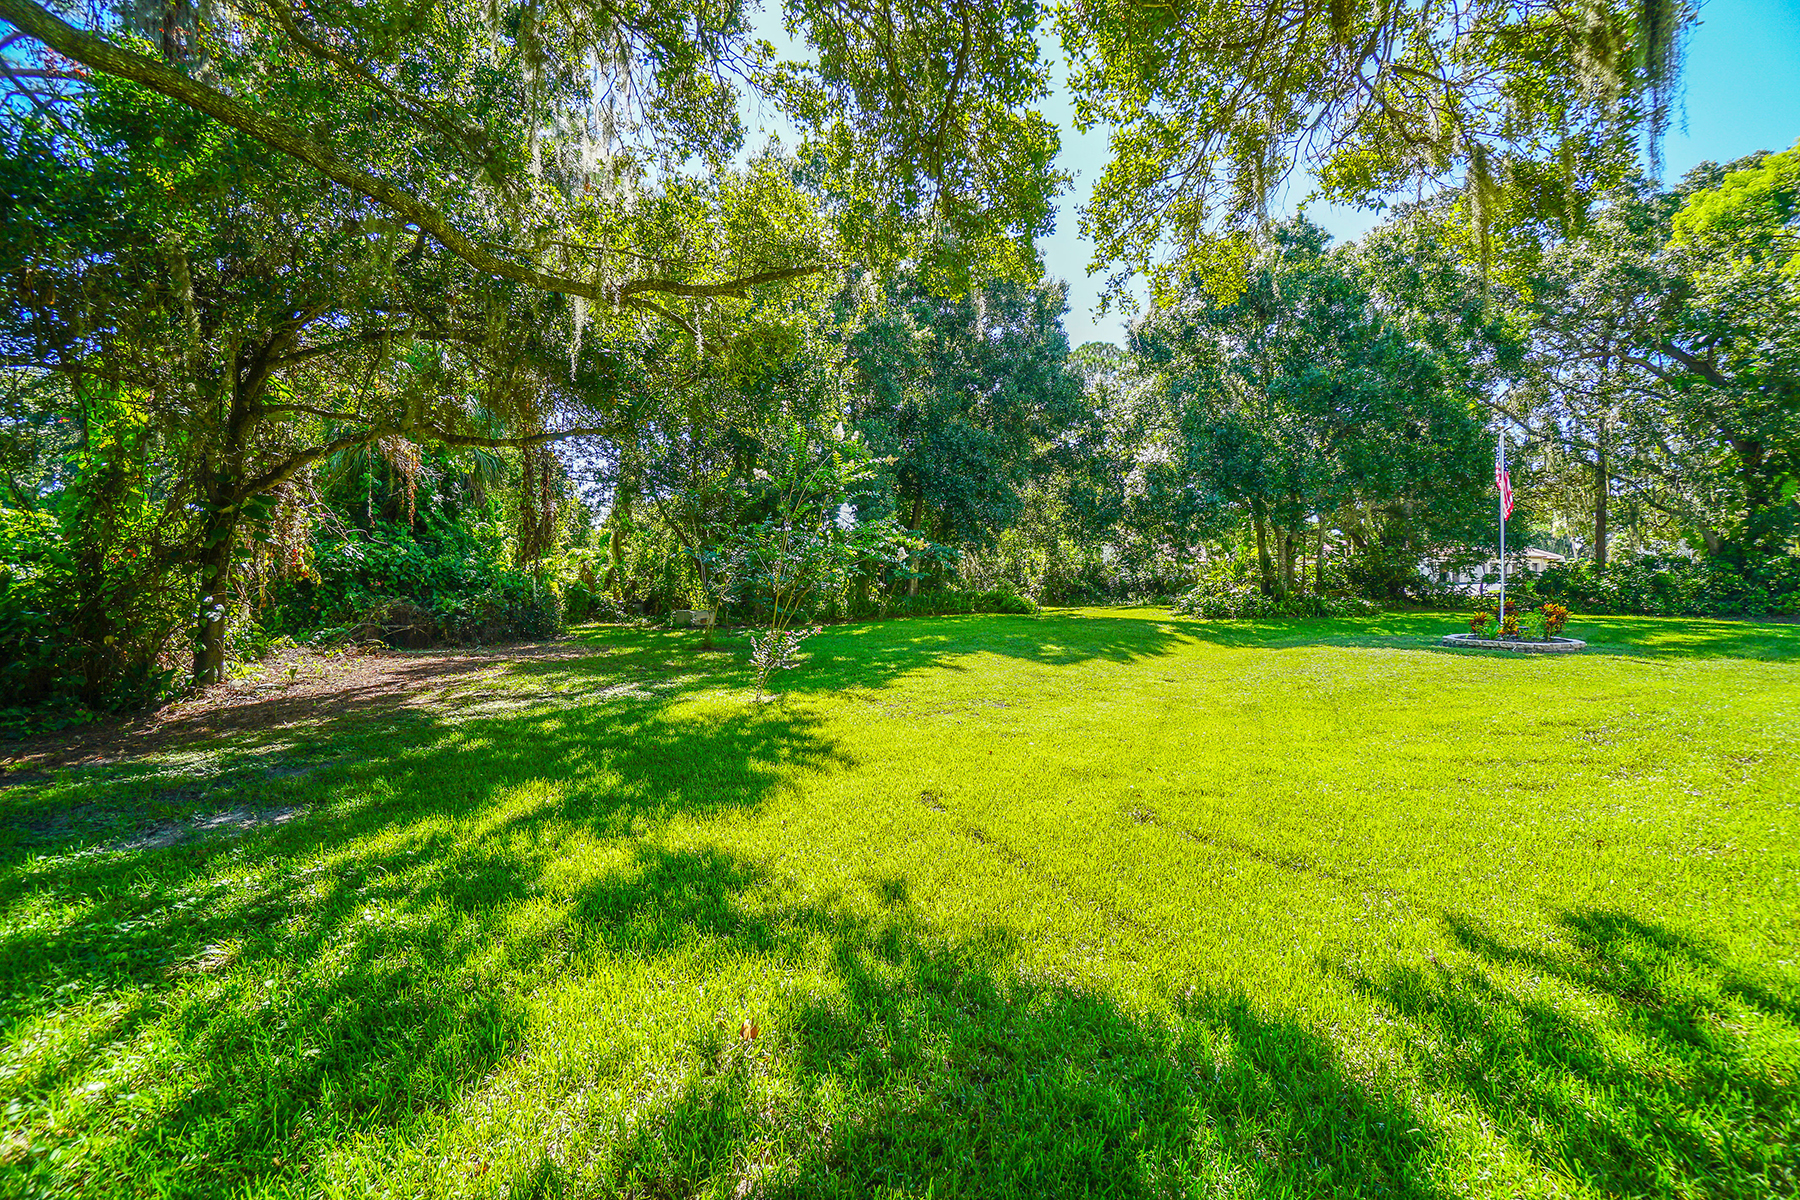 Land for Sale at THE MEADOWS Longmeadow 0 Sarasota, Florida, 34235 United States